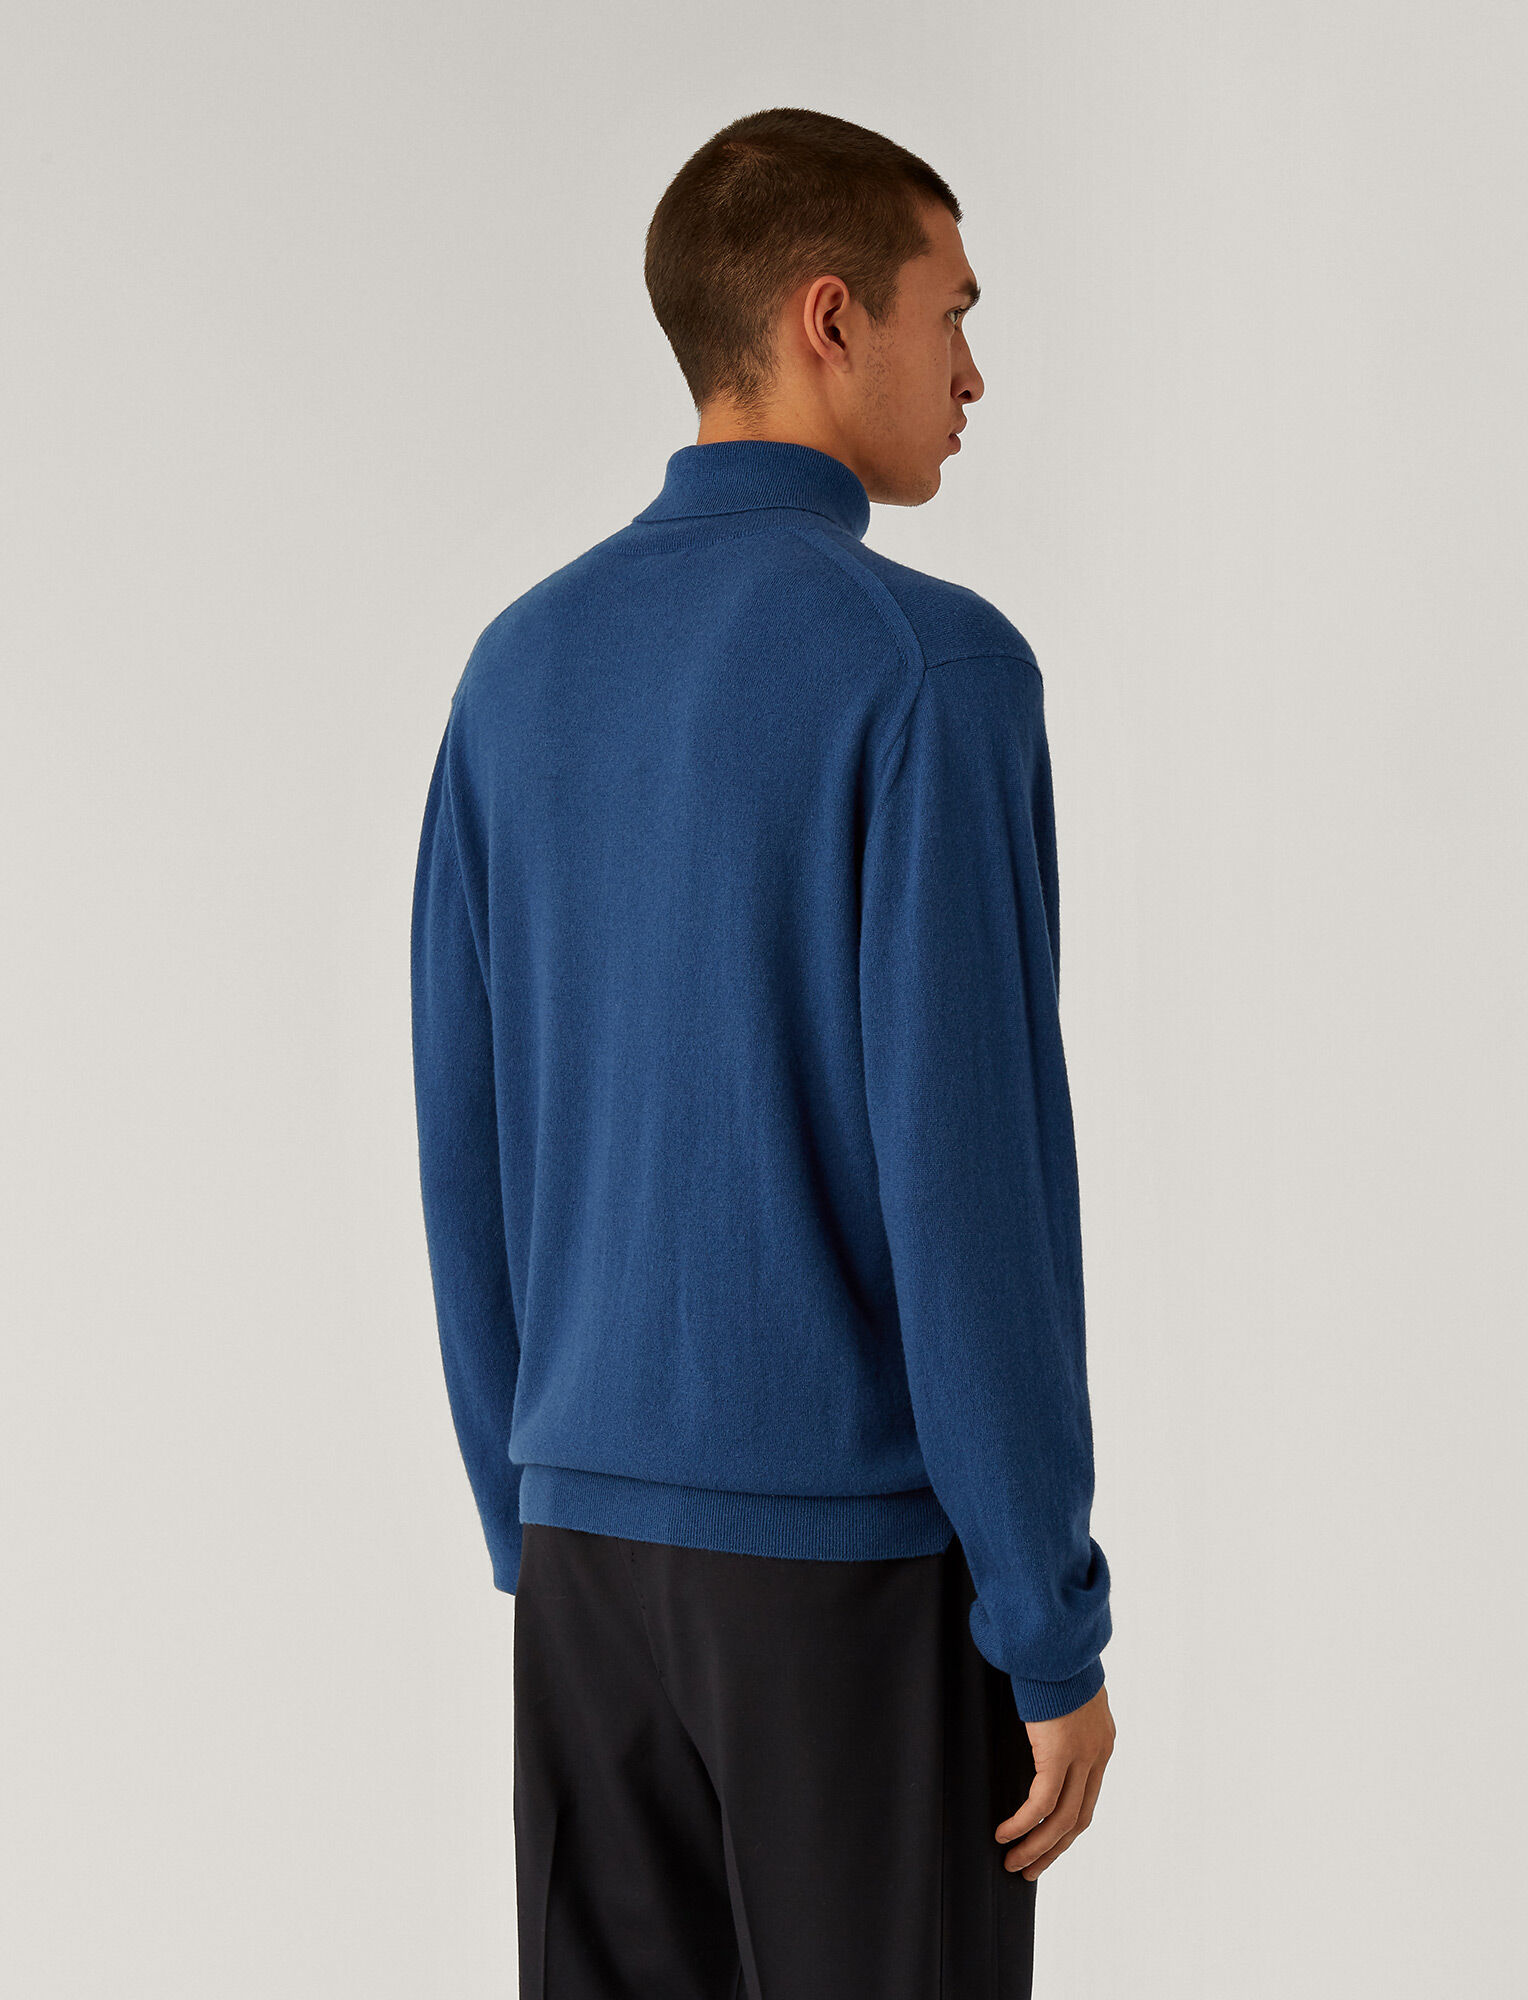 Joseph, Roll Neck Cashmere Knit, in Blue